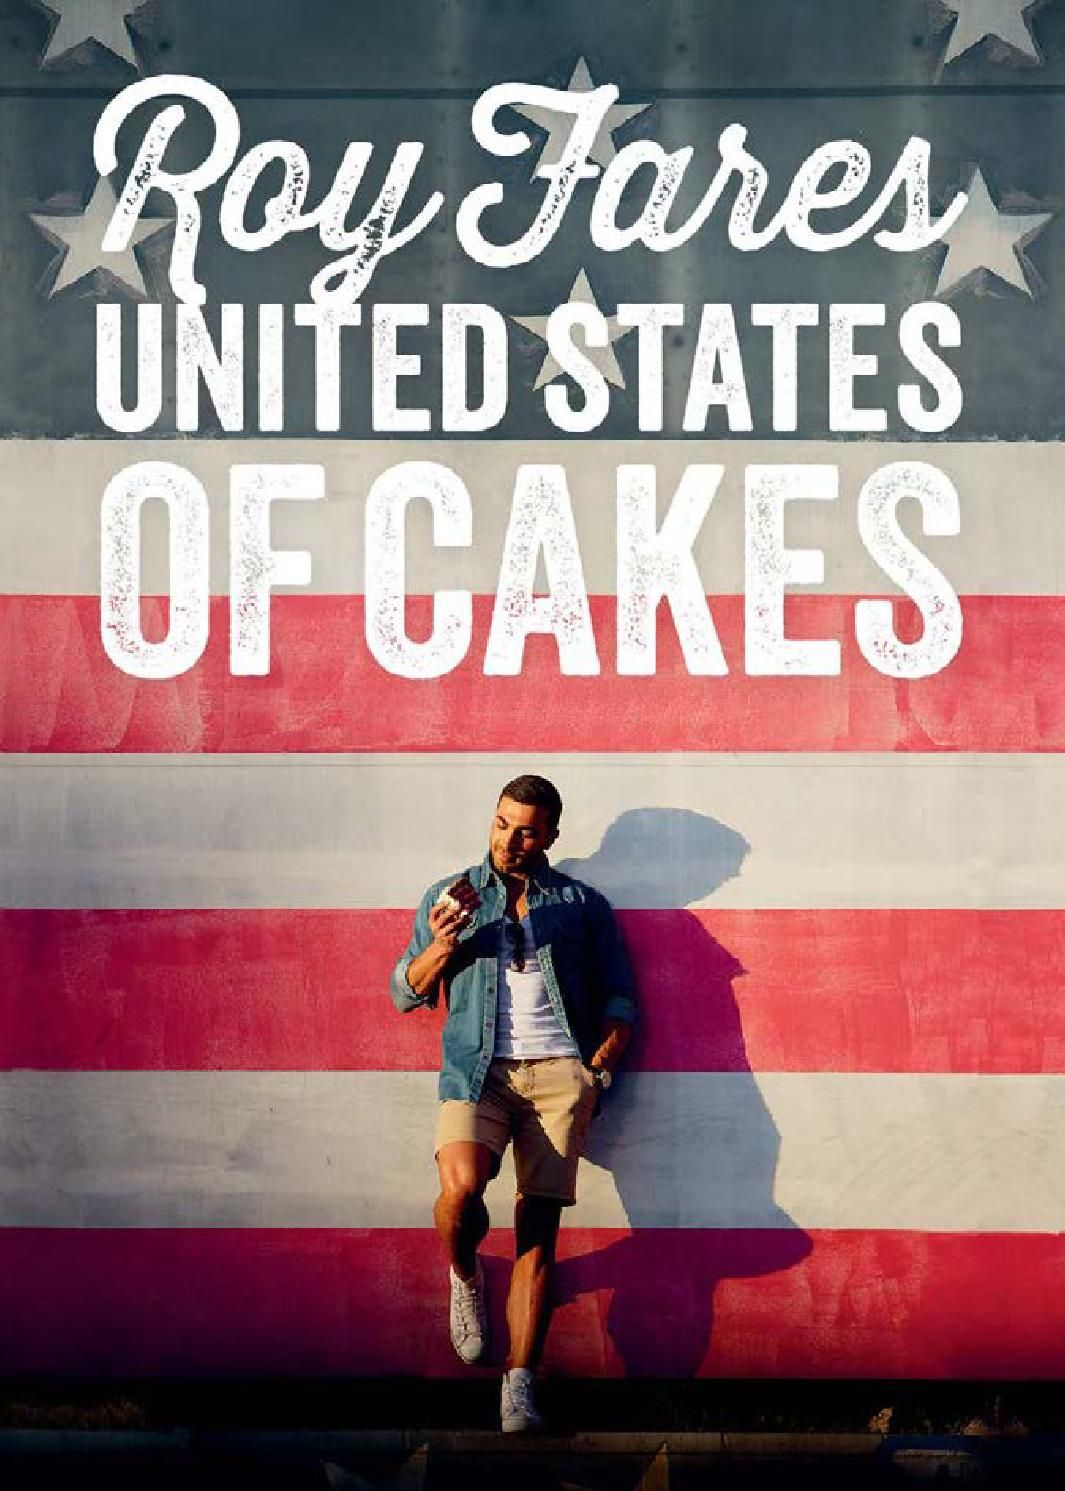 United States of Cakes_Roy Fares